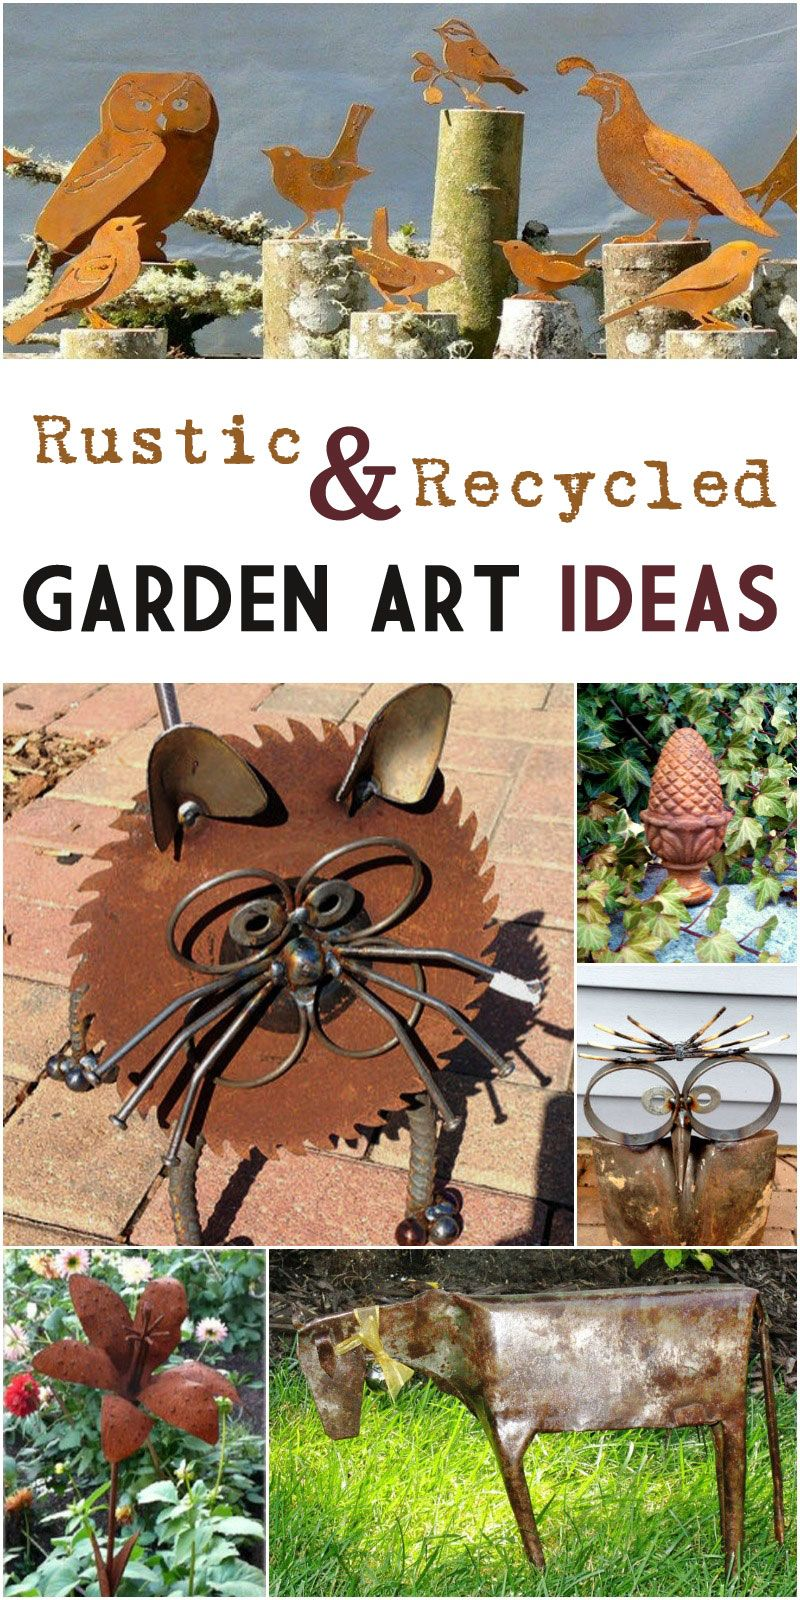 Recycled Garden Art Ideas Rustic recycled garden art ideas garden art rust and gardens heres lots of rustic and recycled garden art ideas for workwithnaturefo